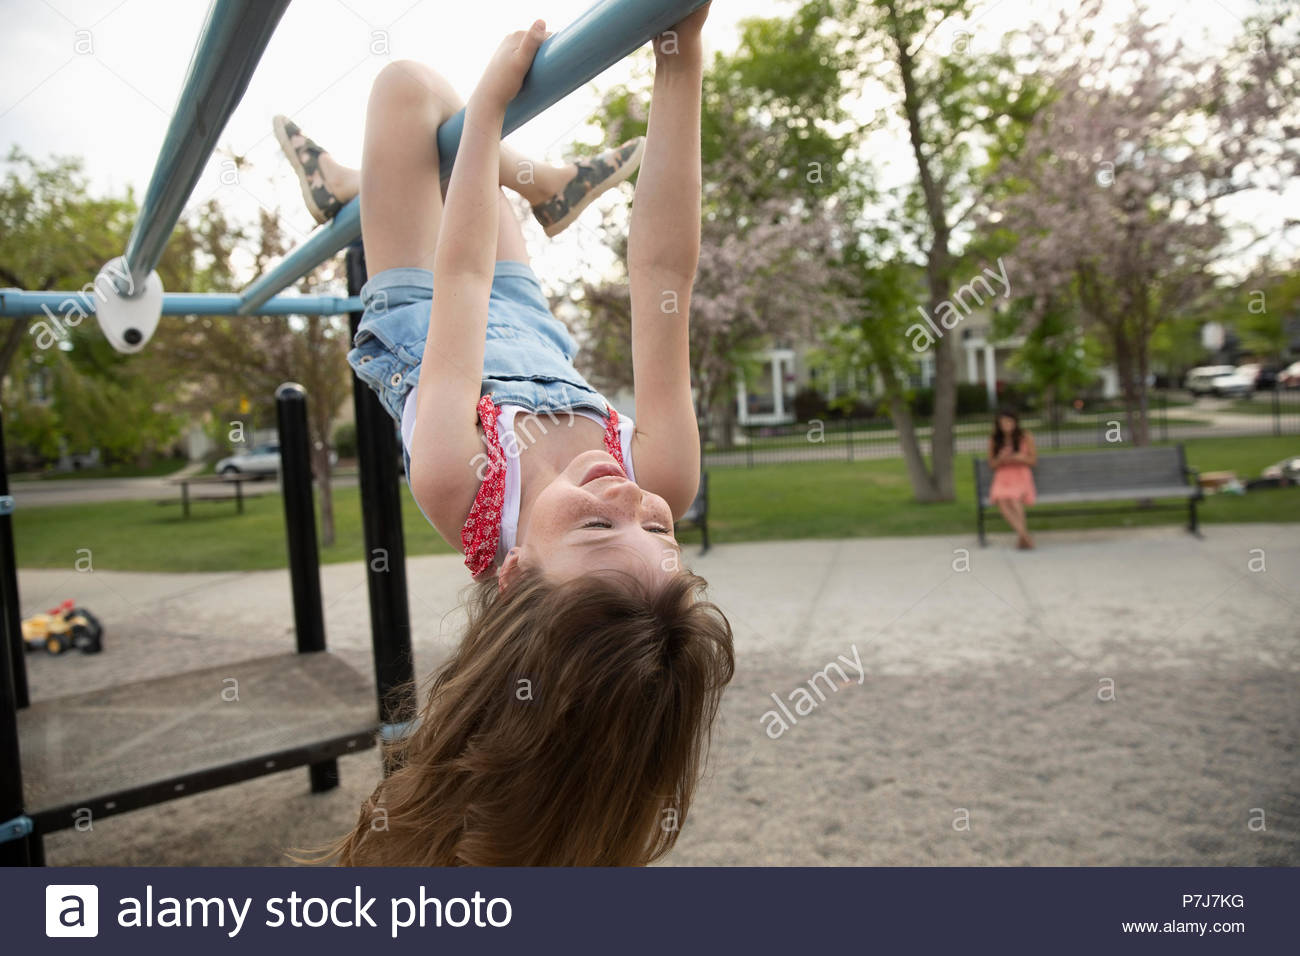 Playful girl hanging upside down from monkey bars at playground - Stock Image